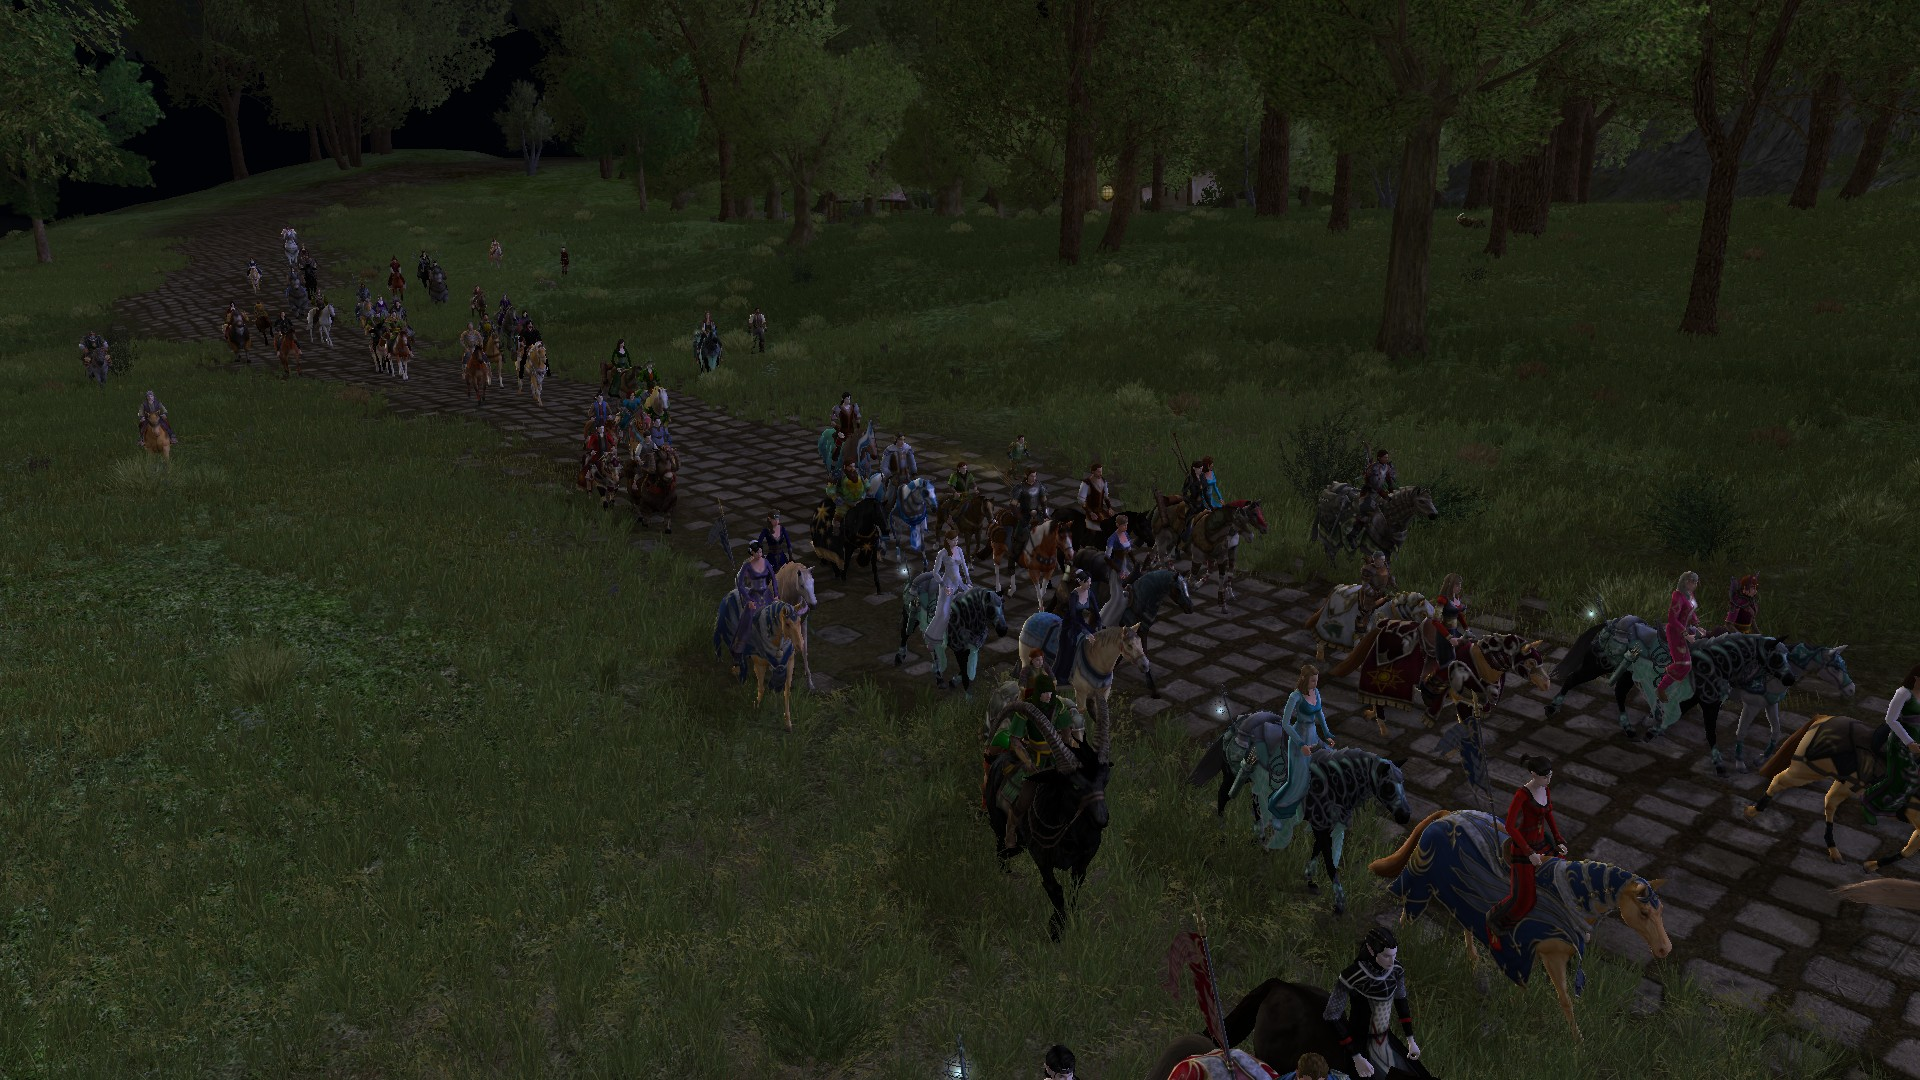 Whither LotRO? A Look to the Future